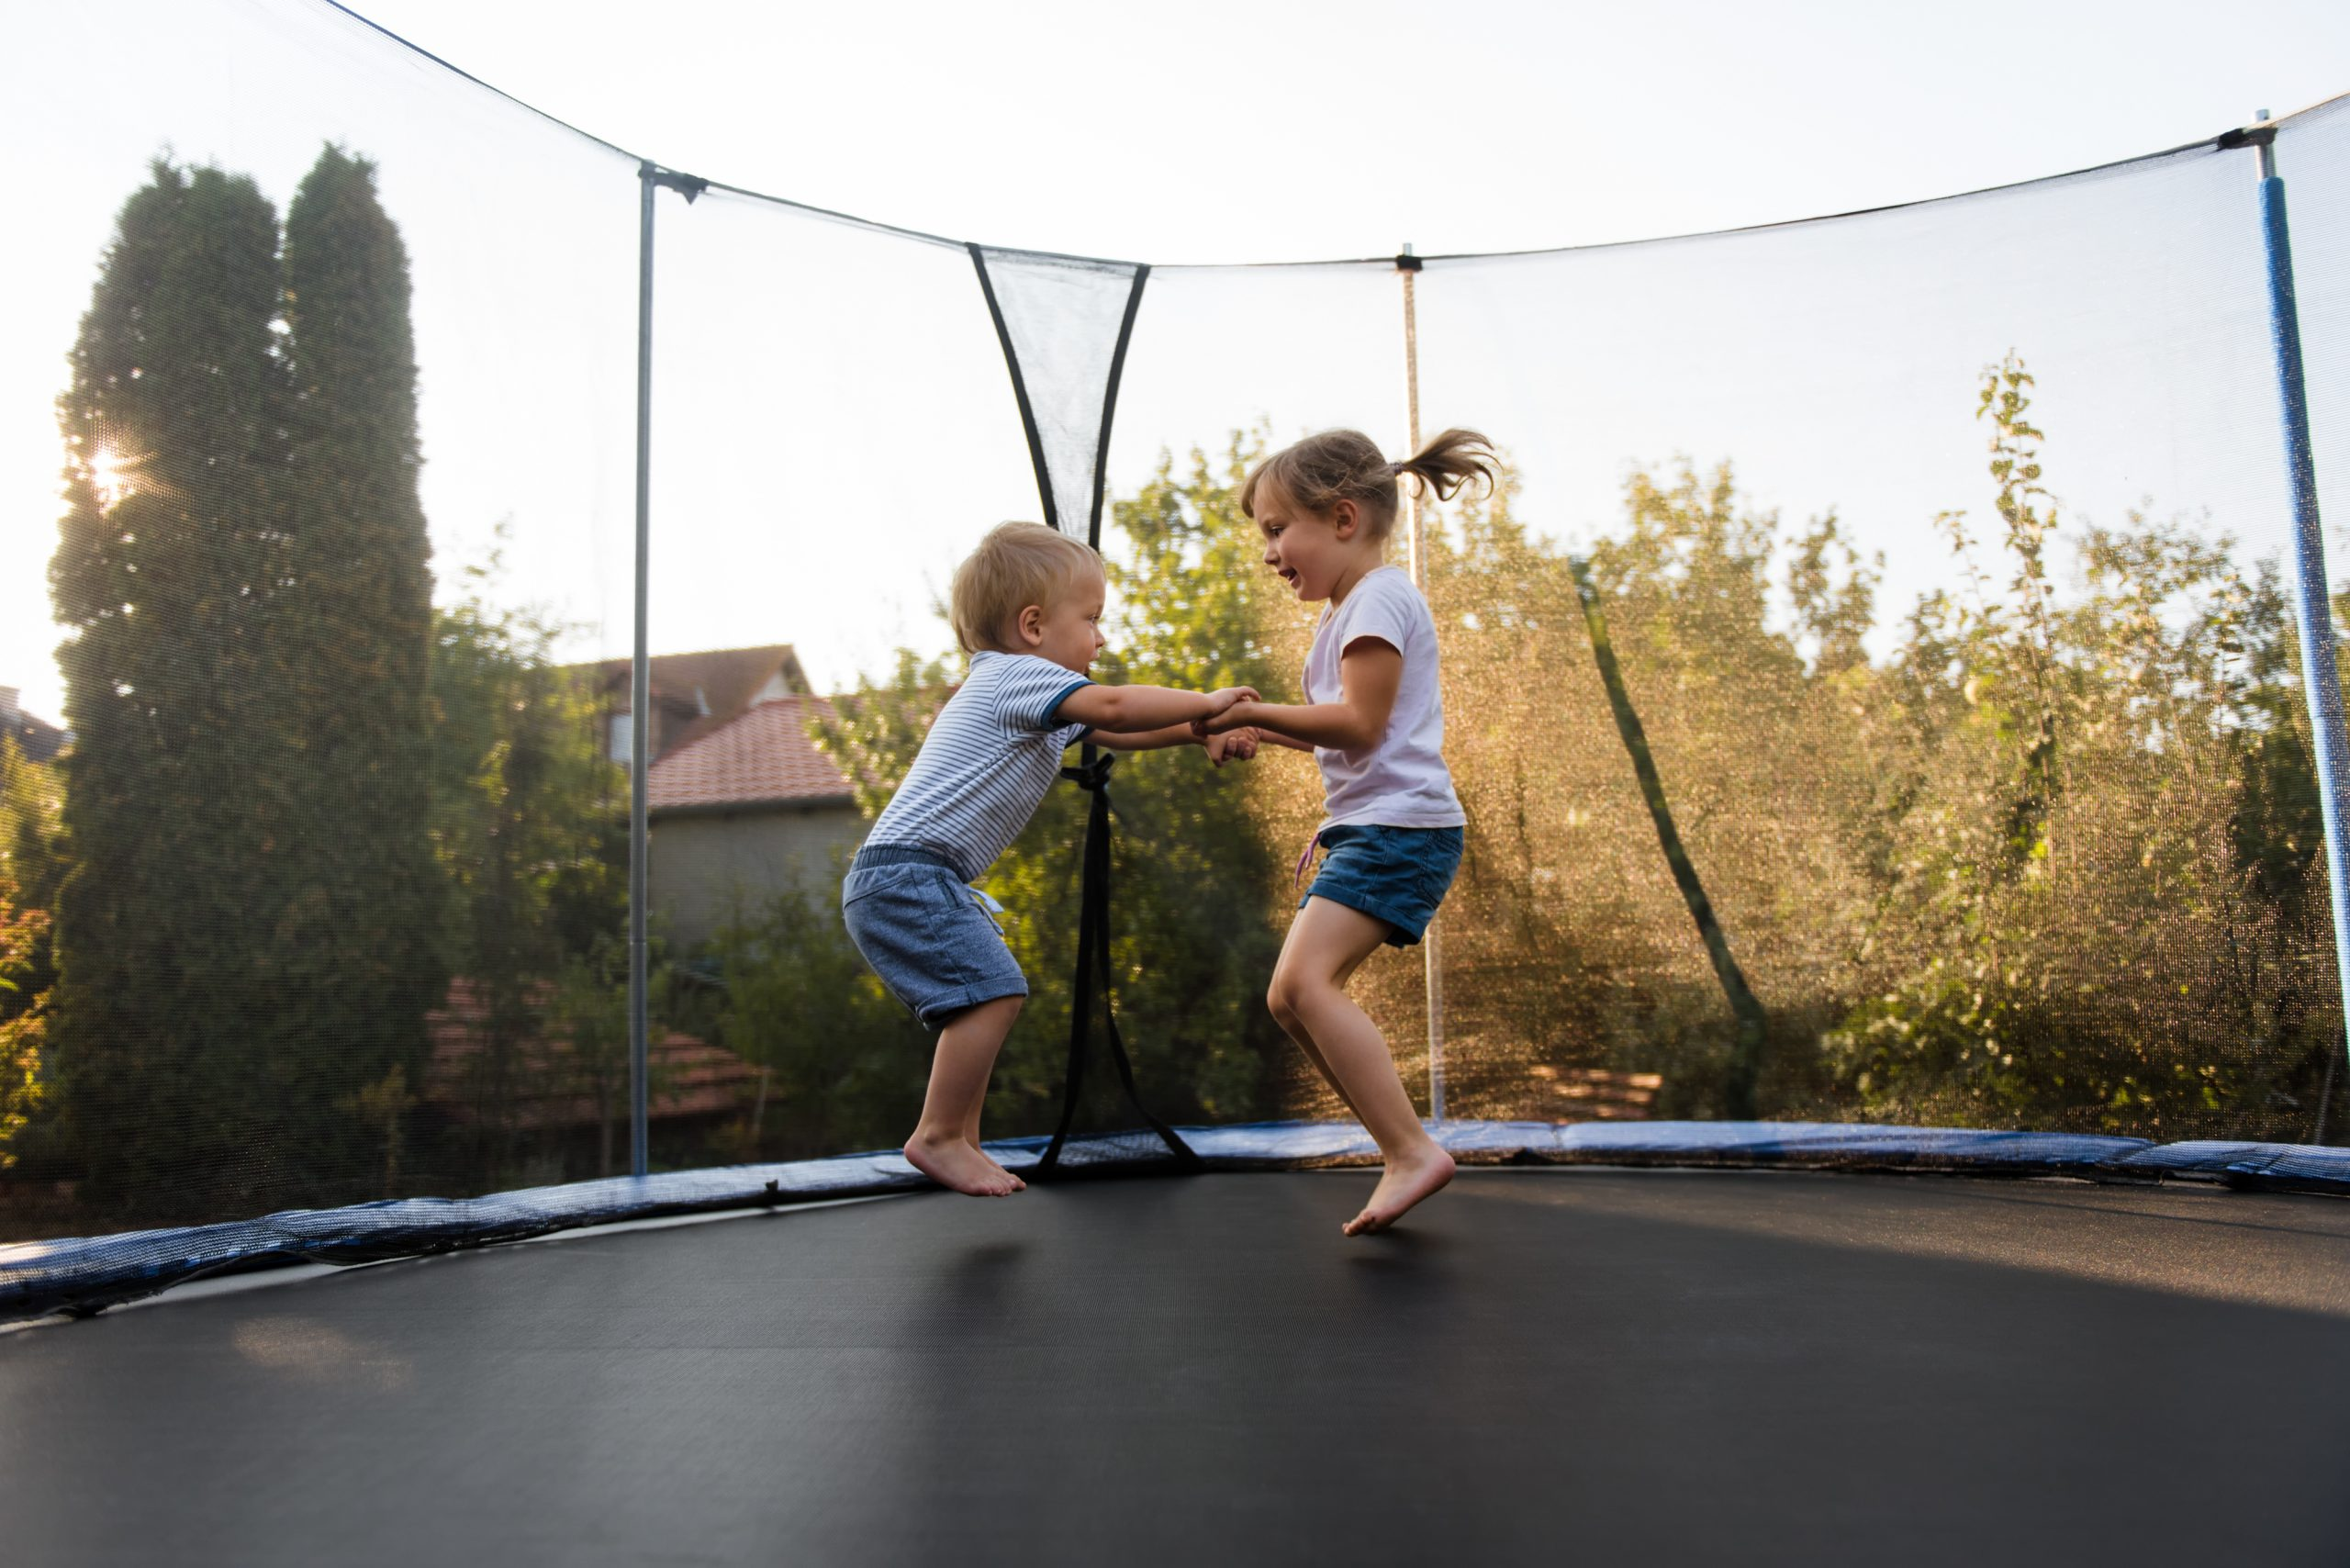 Boy and girl on a trampoline holding hands and bouncing